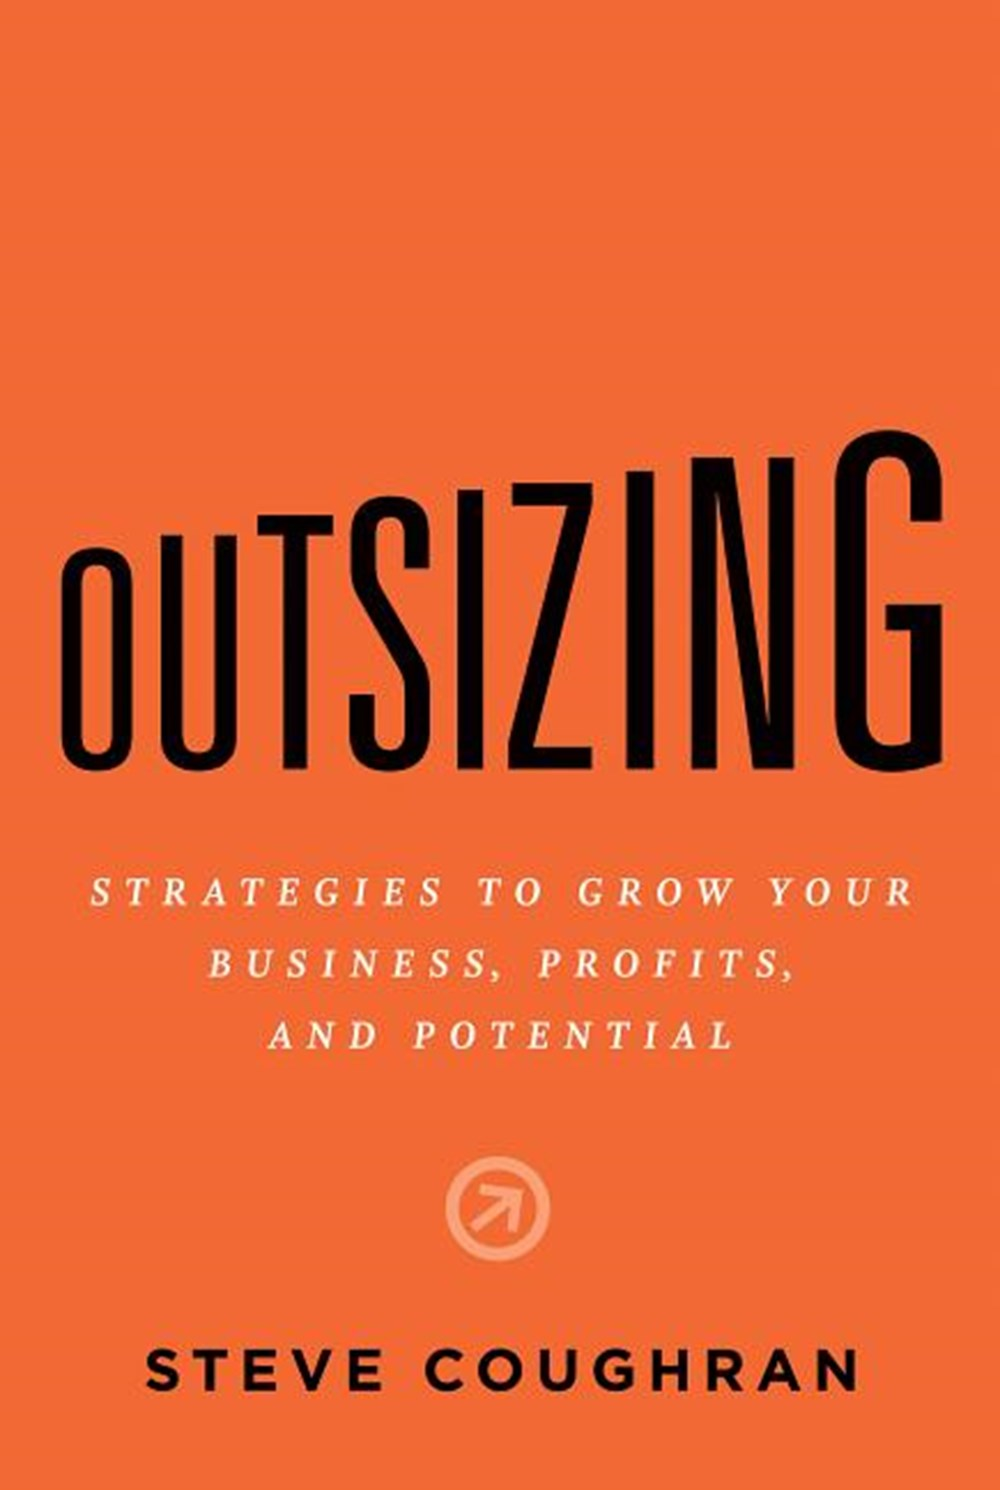 Outsizing Strategies to Grow Your Business, Profits, and Potential